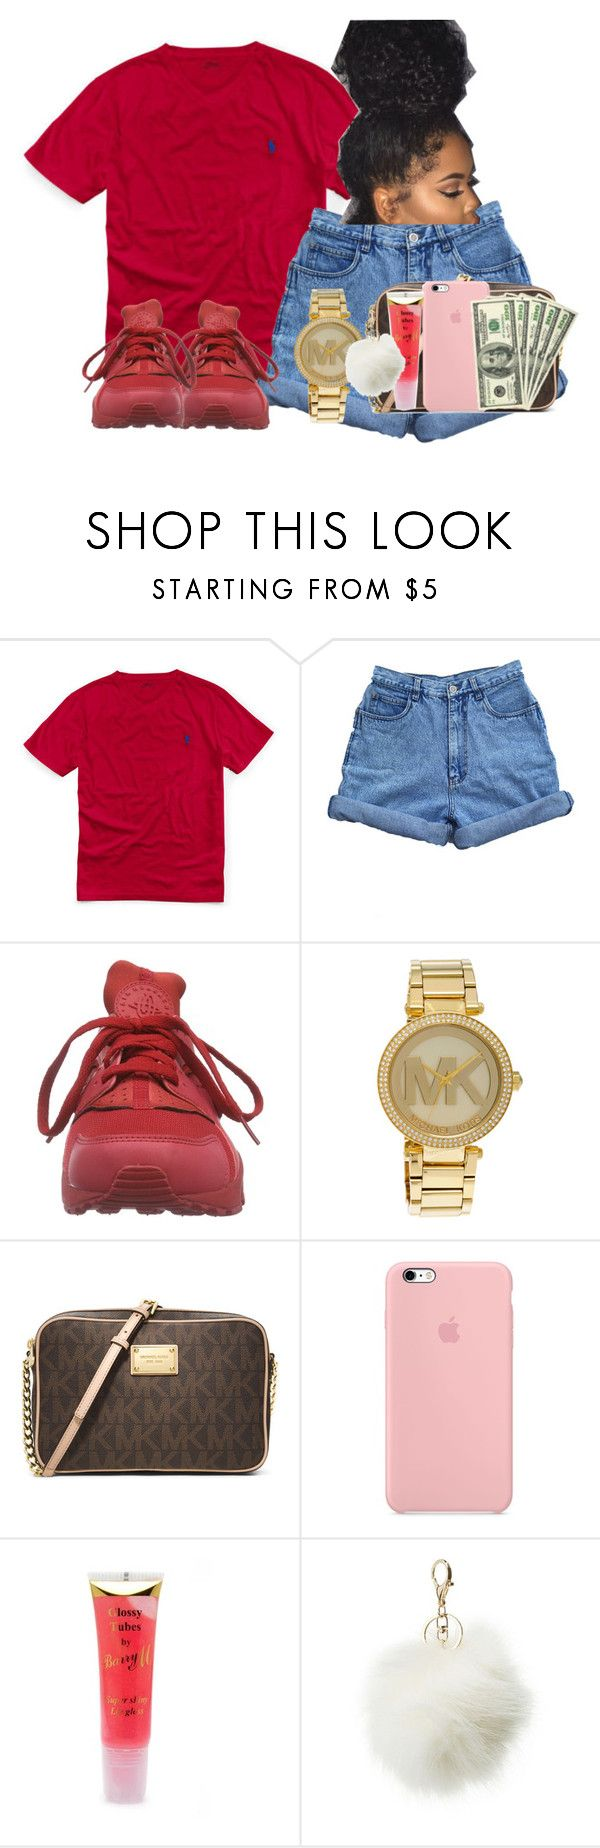 """""""Game today"""" by aerielle24 ❤ liked on Polyvore featuring Ralph Lauren, Bill Blass, NIKE, Michael Kors, MICHAEL Michael Kors, Barry M and Charlotte Russe"""